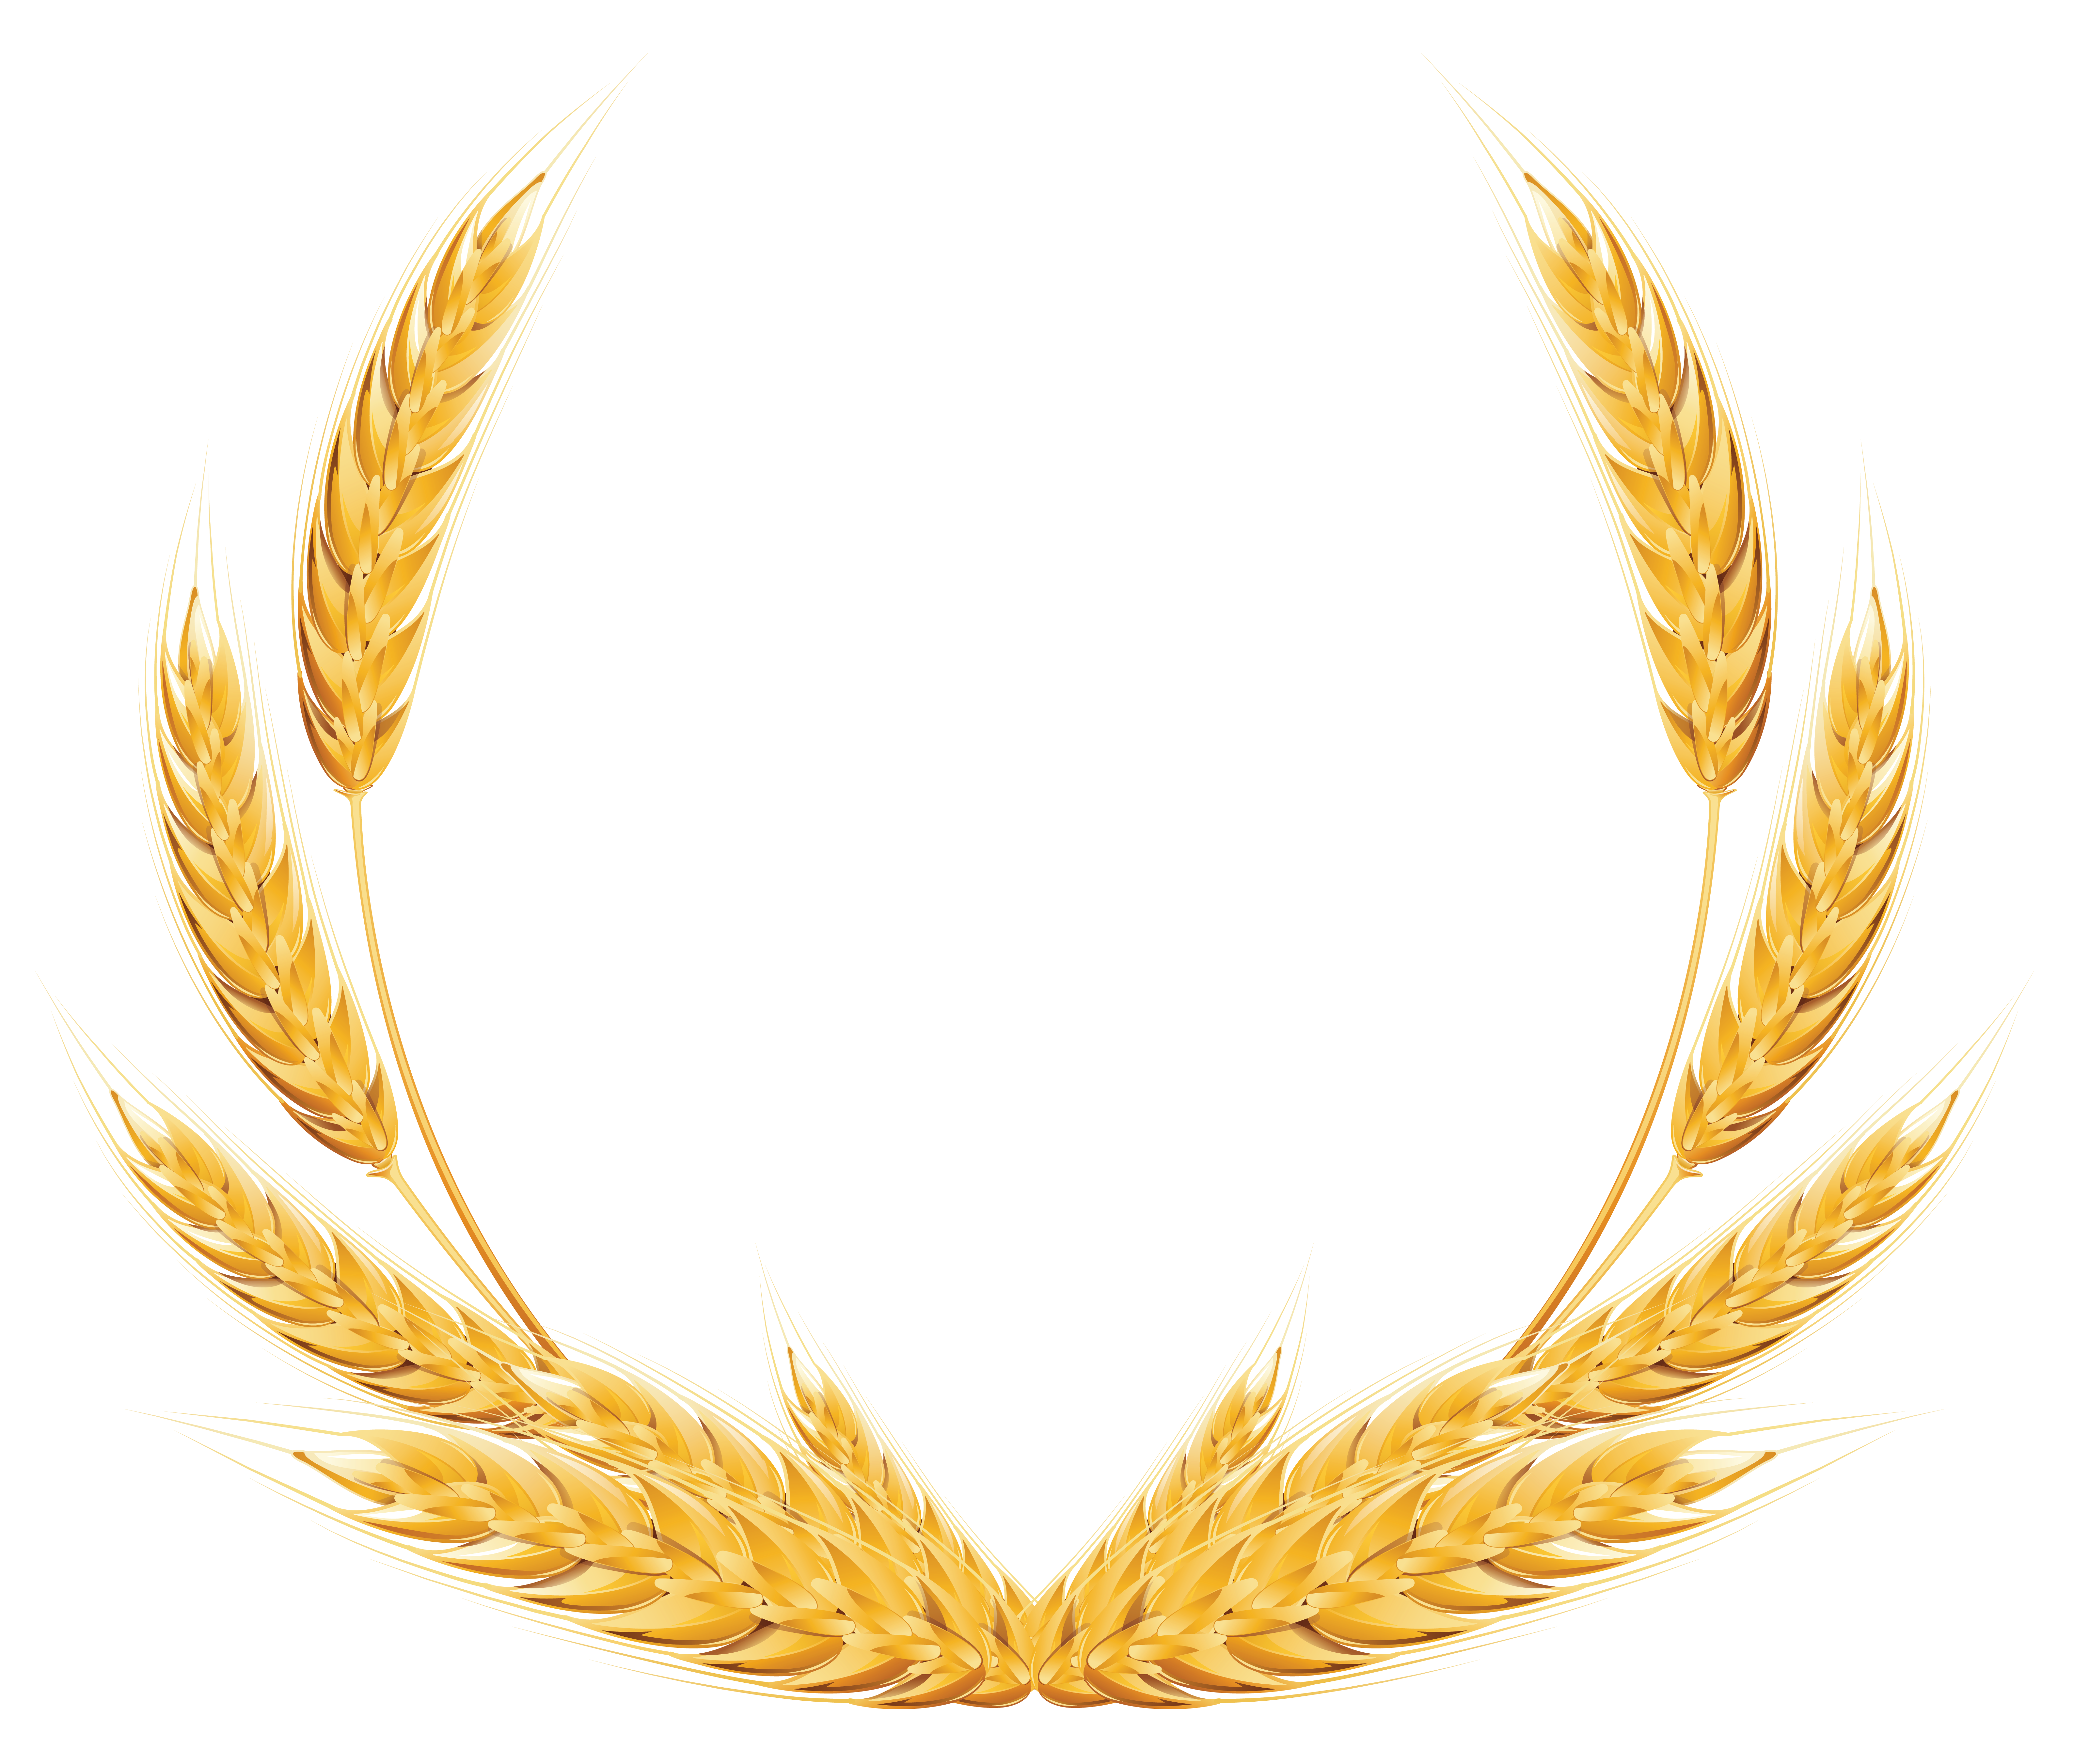 Wheat frame clipart vector free Pin by alish on Design | Wheat decorations, Clip art, Free ... vector free